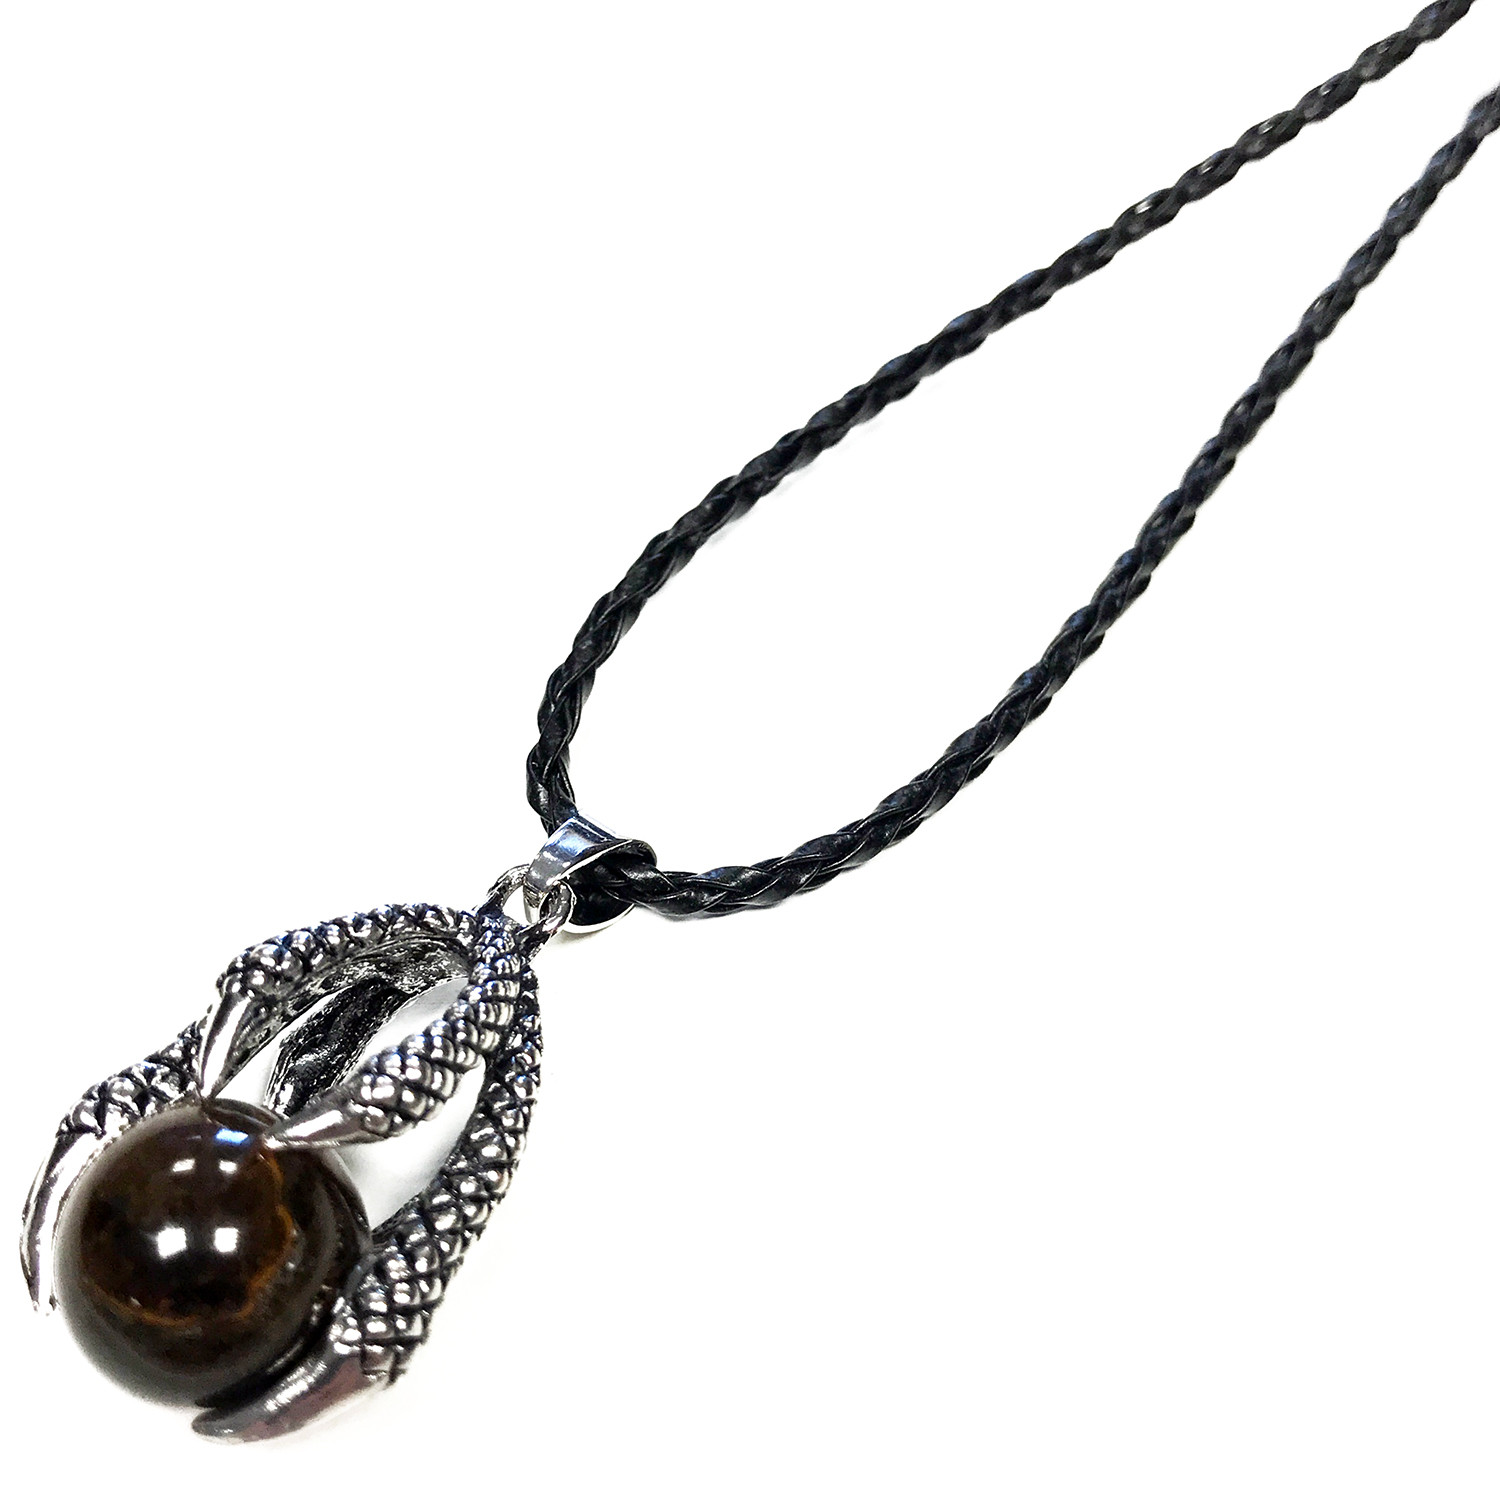 Lrg Dragon Claw Pendant Tiger Eye